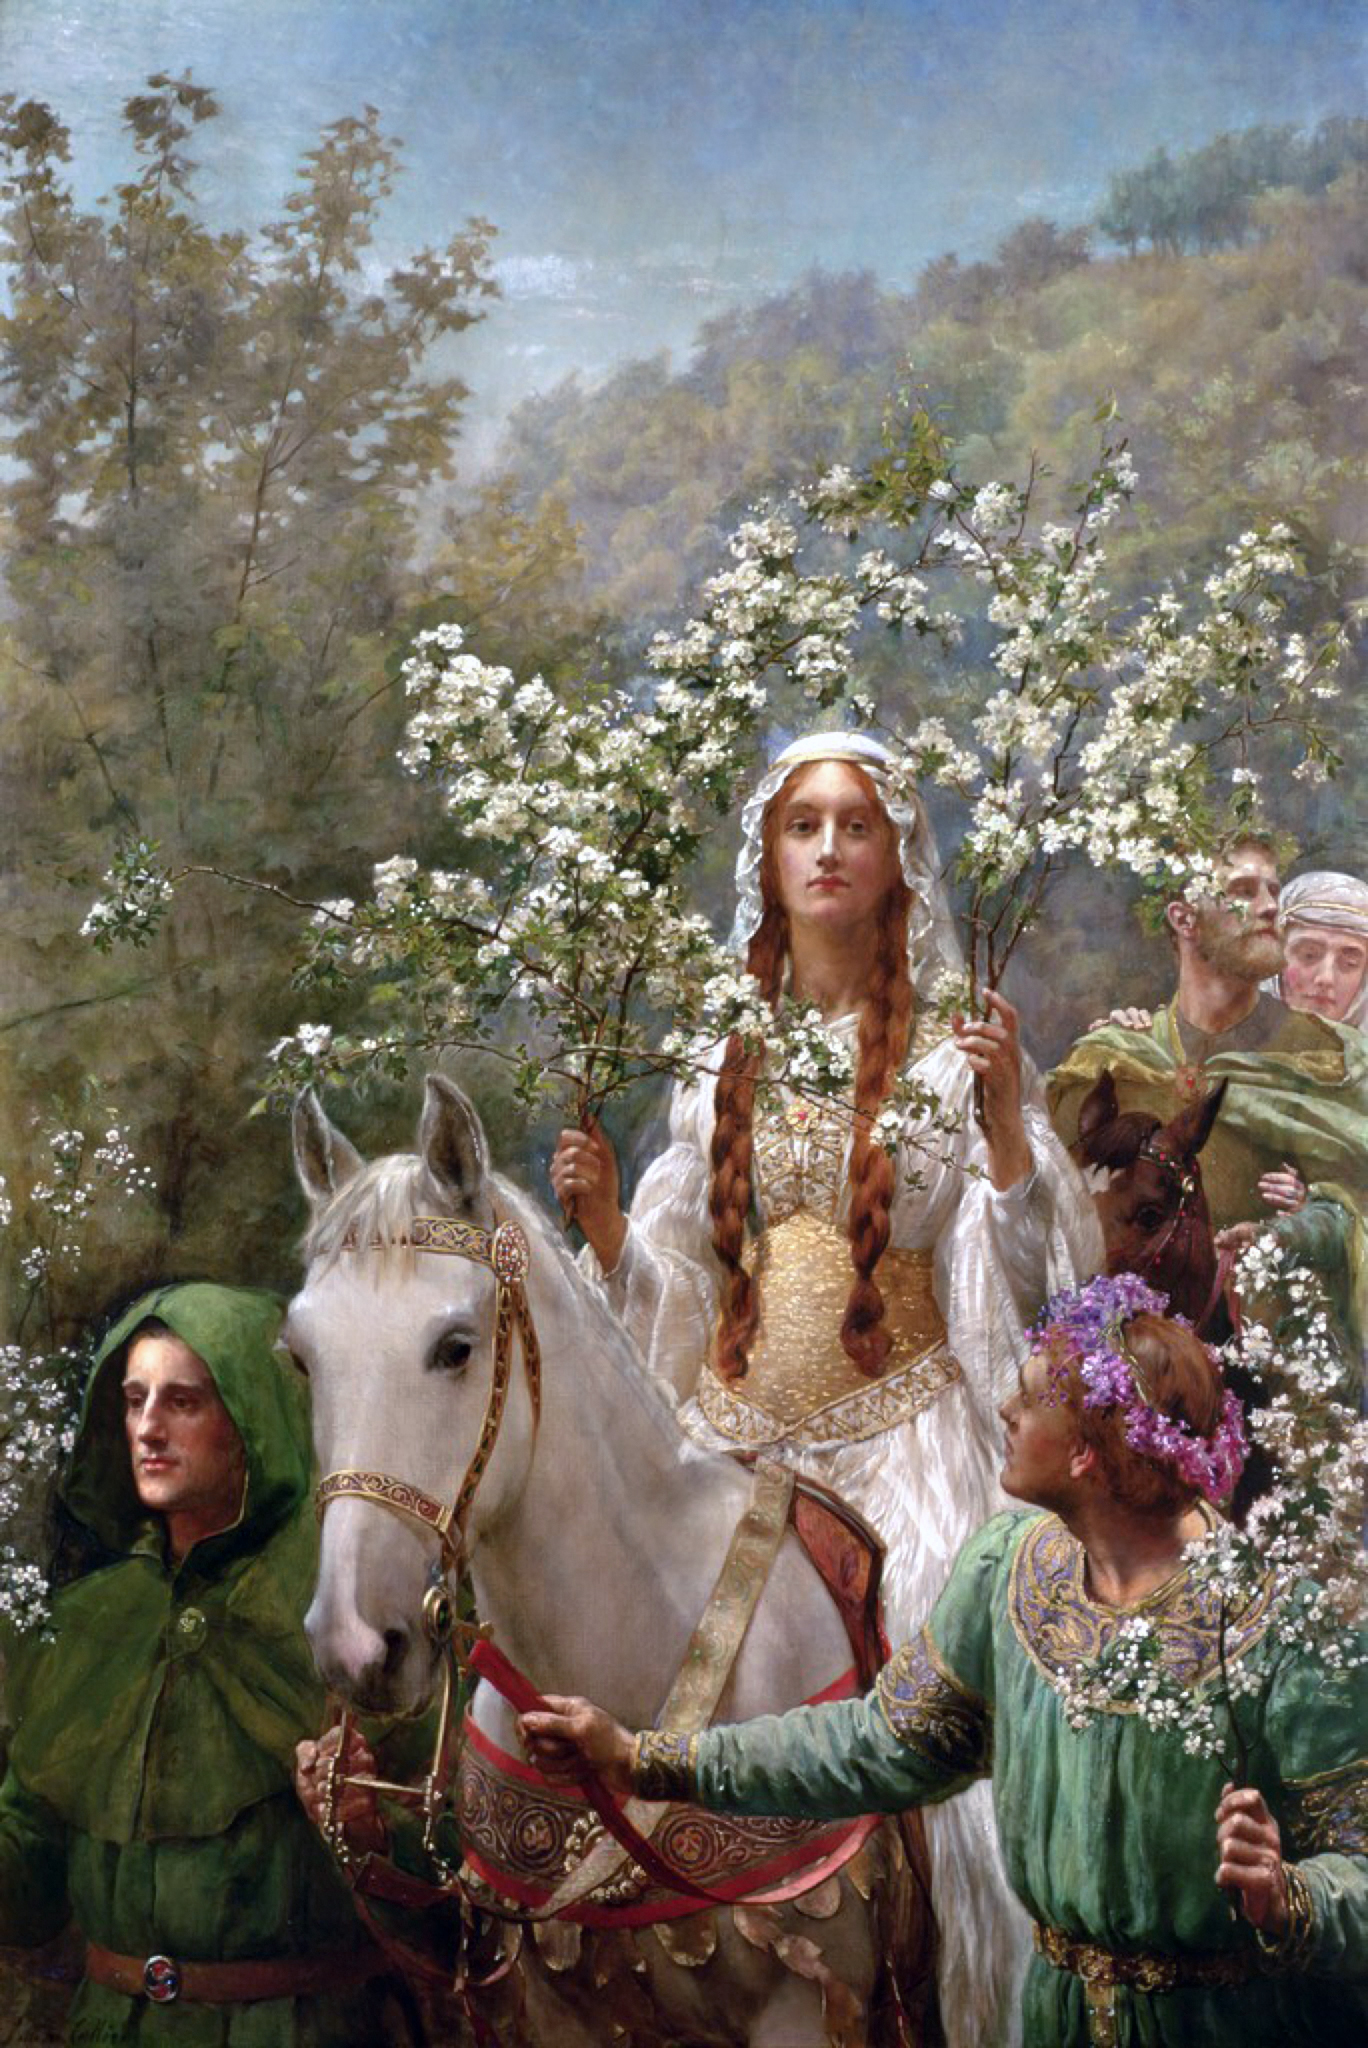 https://i2.wp.com/upload.wikimedia.org/wikipedia/commons/6/6f/John_Collier_Queen_Guinevre%27s_Maying.jpg